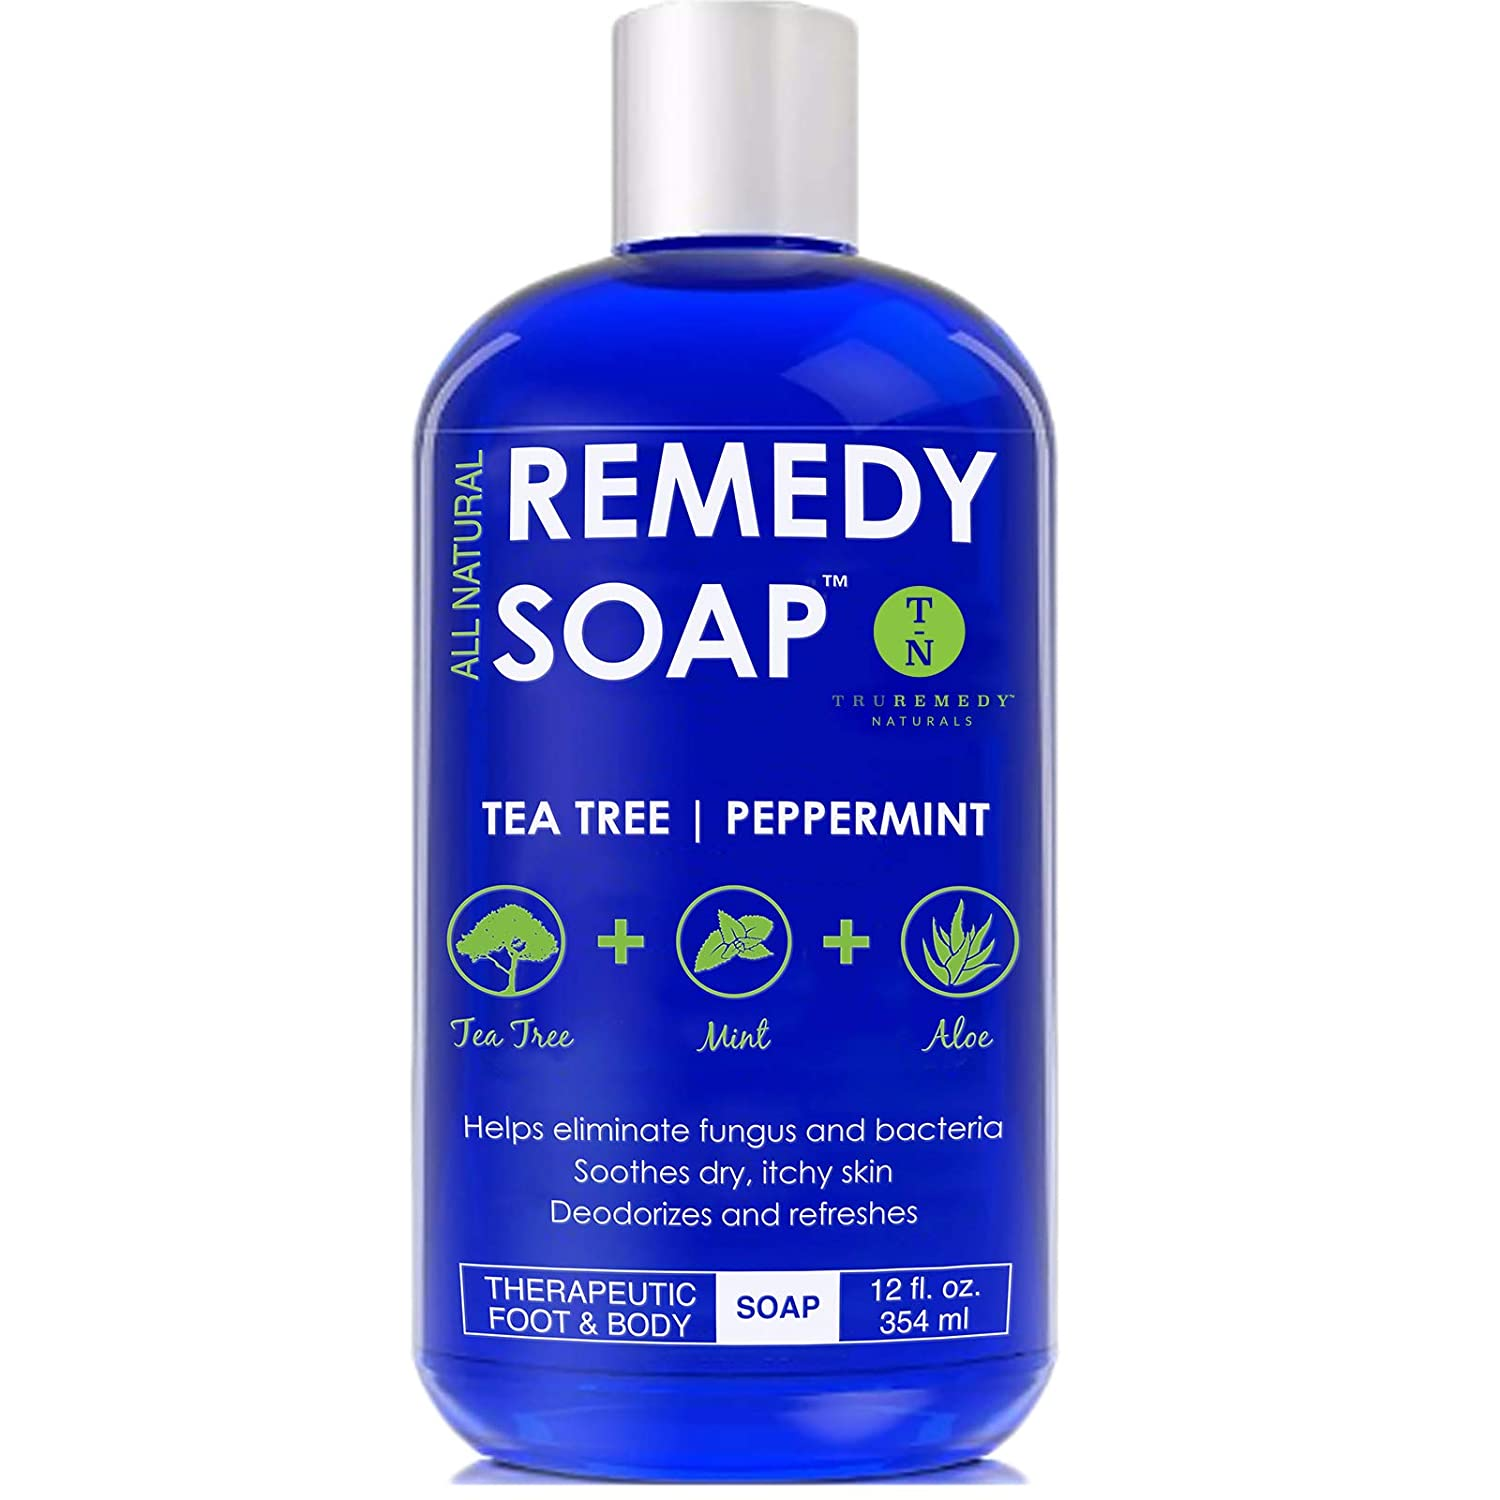 Remedy Antifungal Soap Best Antifungal Soaps